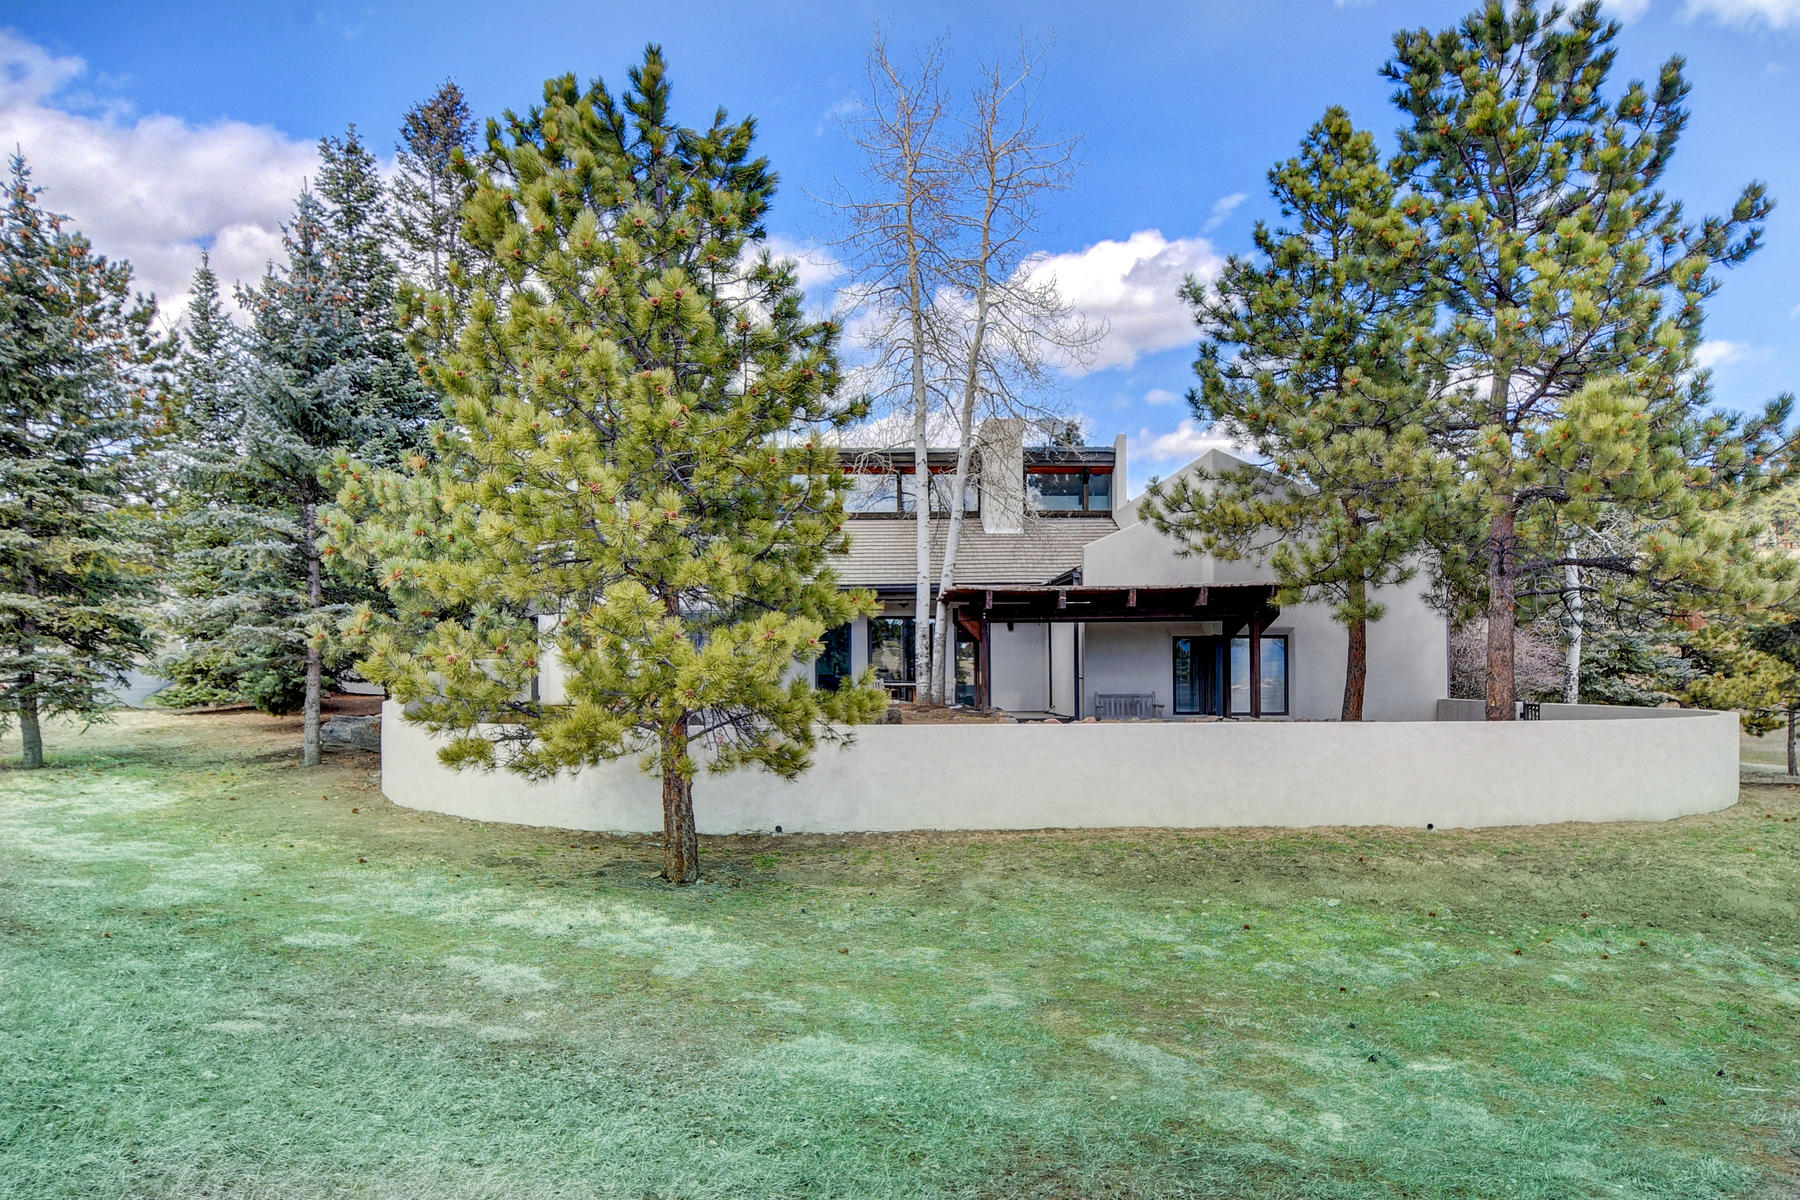 Single Family Homes for Sale at Stunning, Newly Updated, One Level Nestled on 5 Gentle Acres 574 Spring Ranch Drive Golden, Colorado 80401 United States